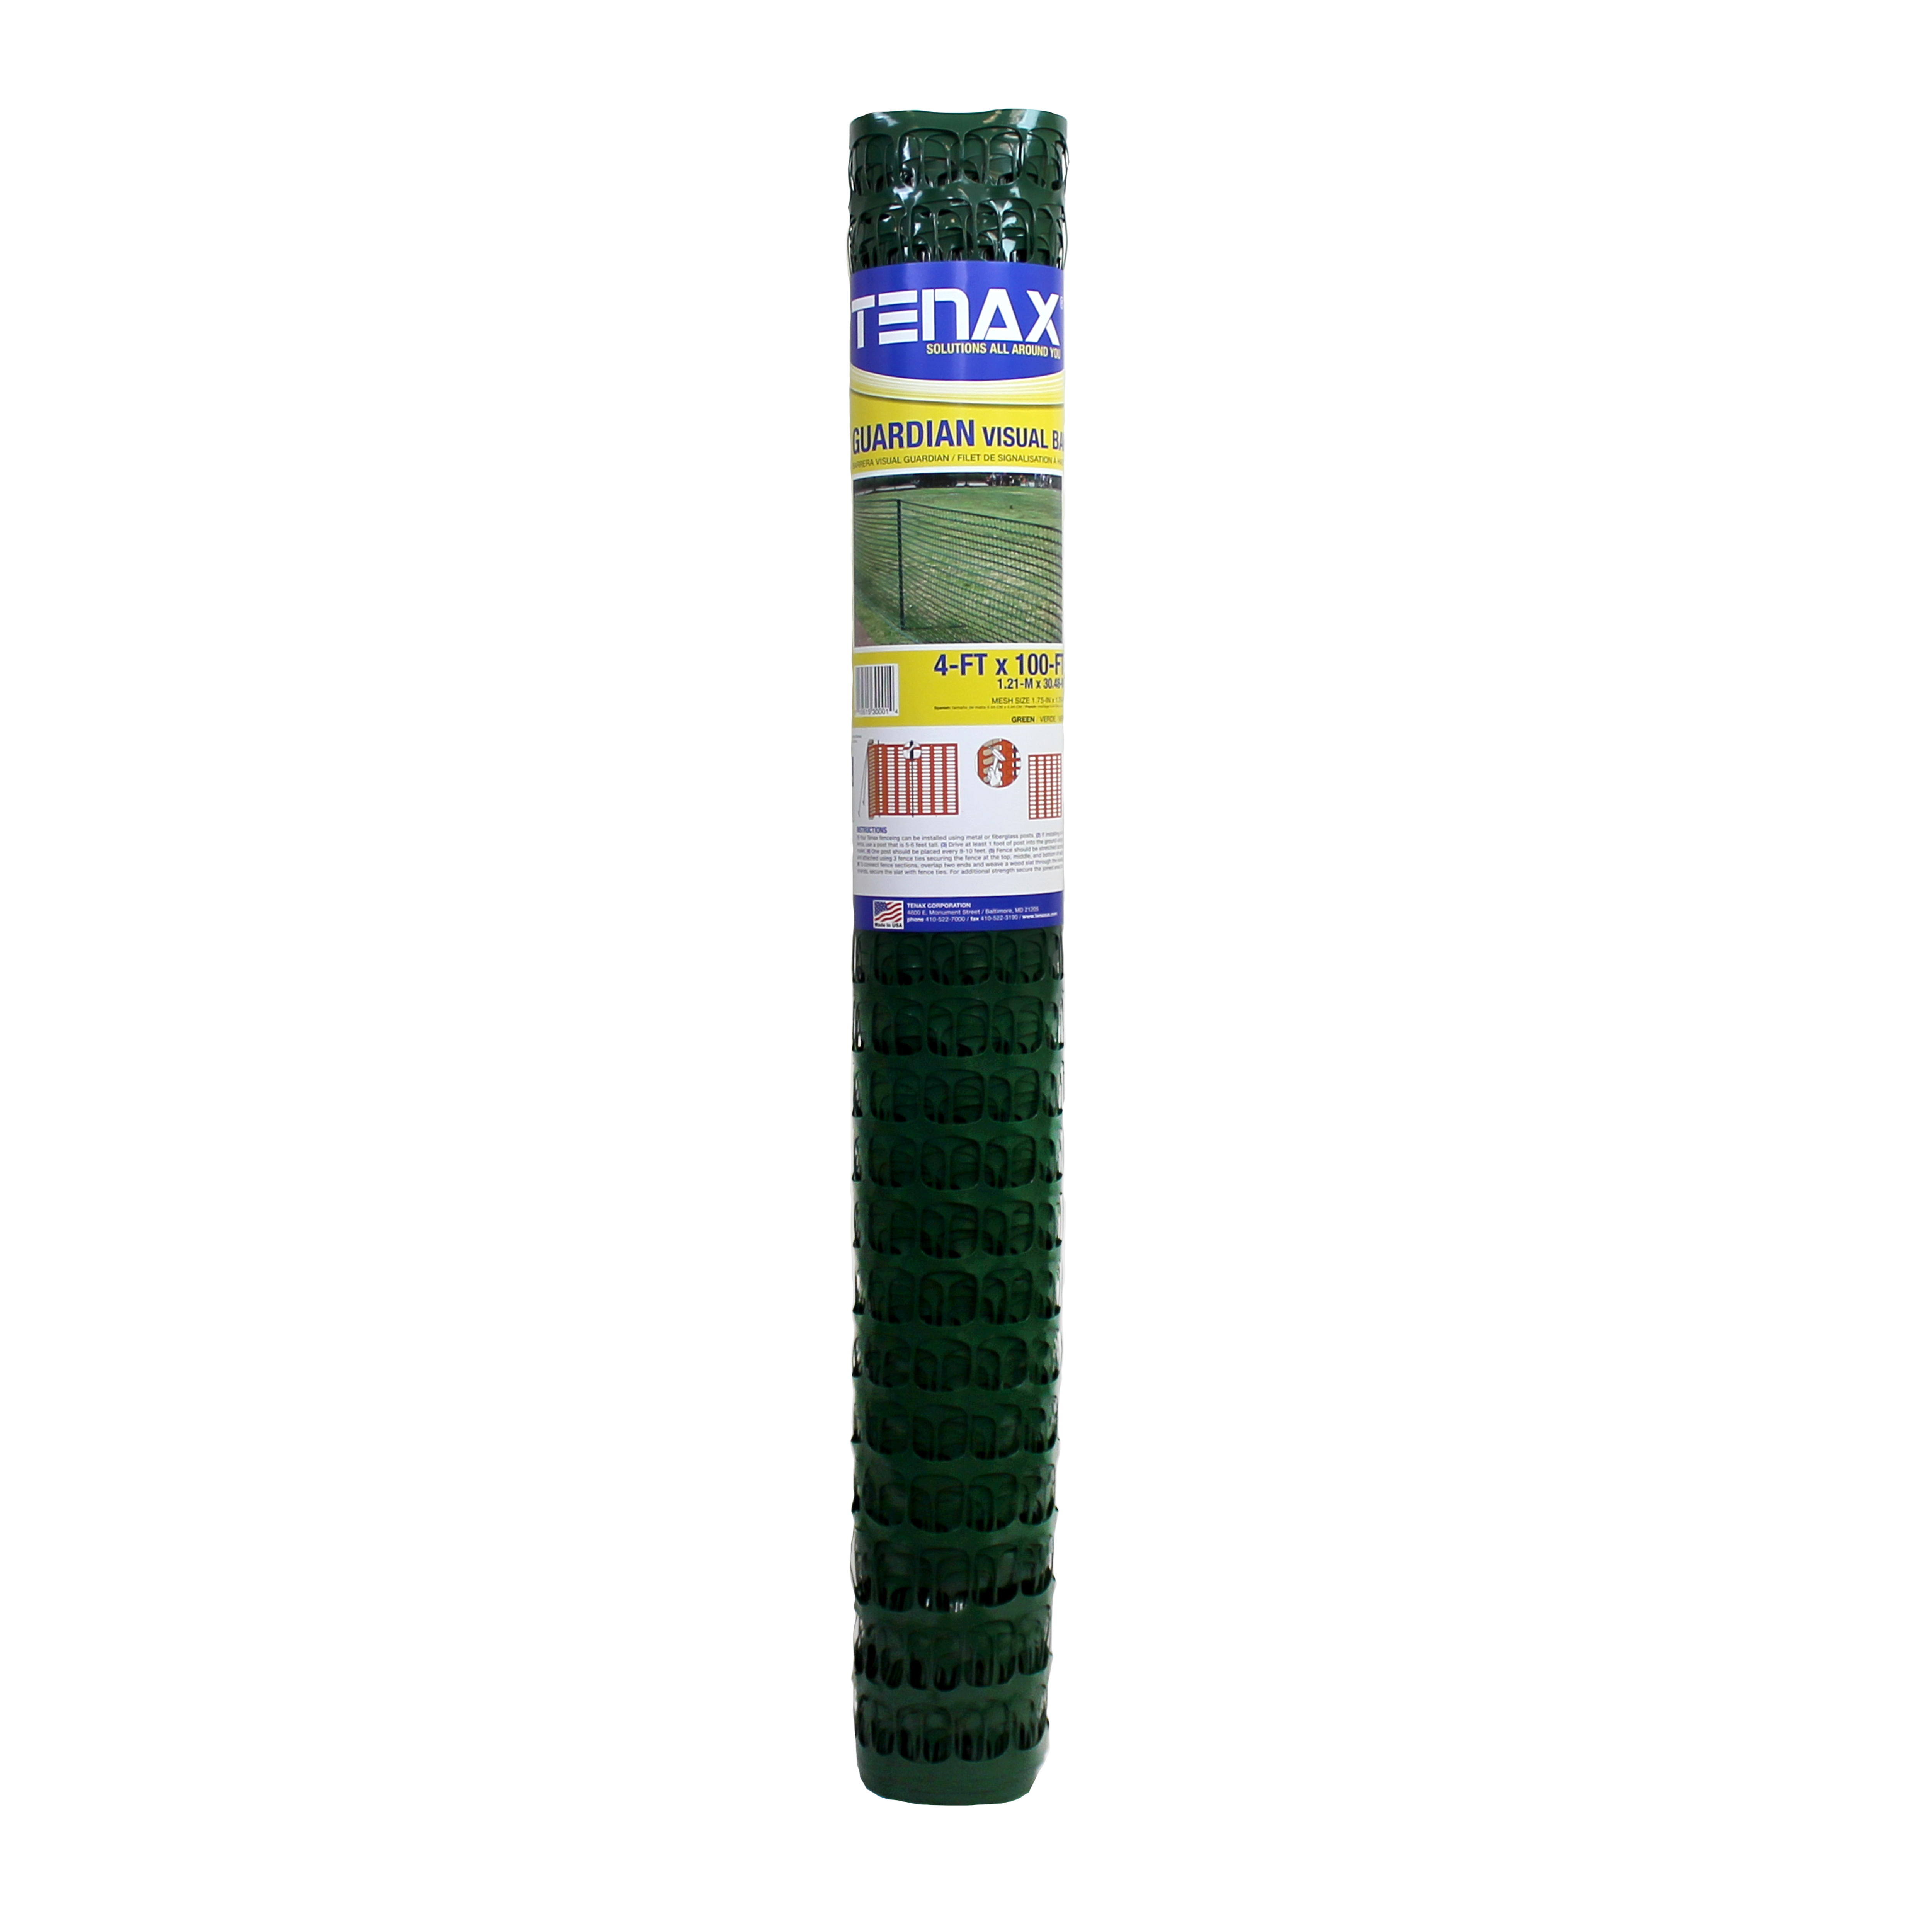 Tenax Guardian Safety Fence, Green, 4 X 100 Feet by Tenax